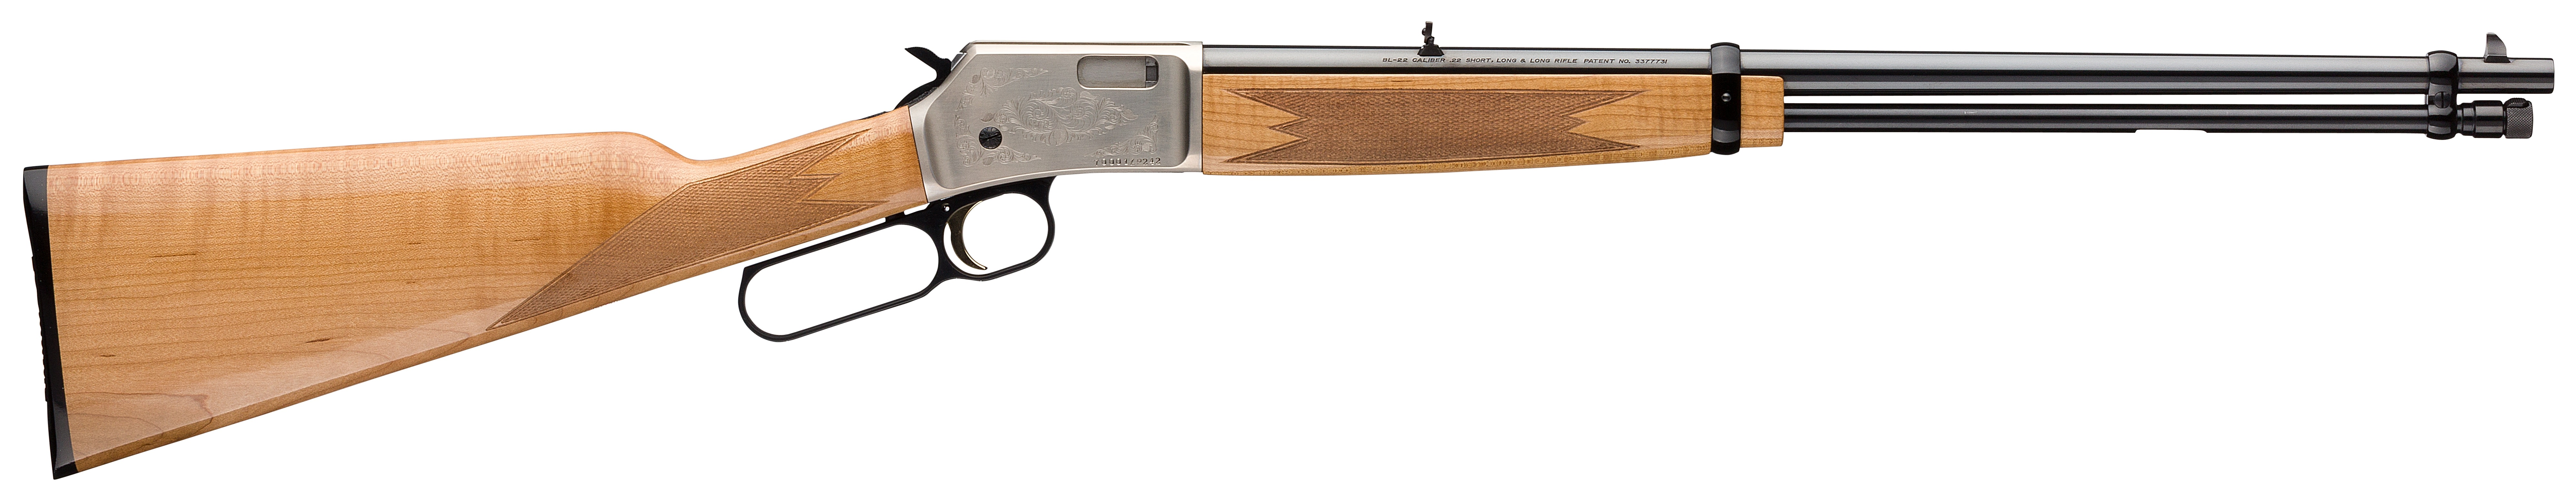 Browning BL-22 Grade II 22 Short/Long/Long Rifle 20